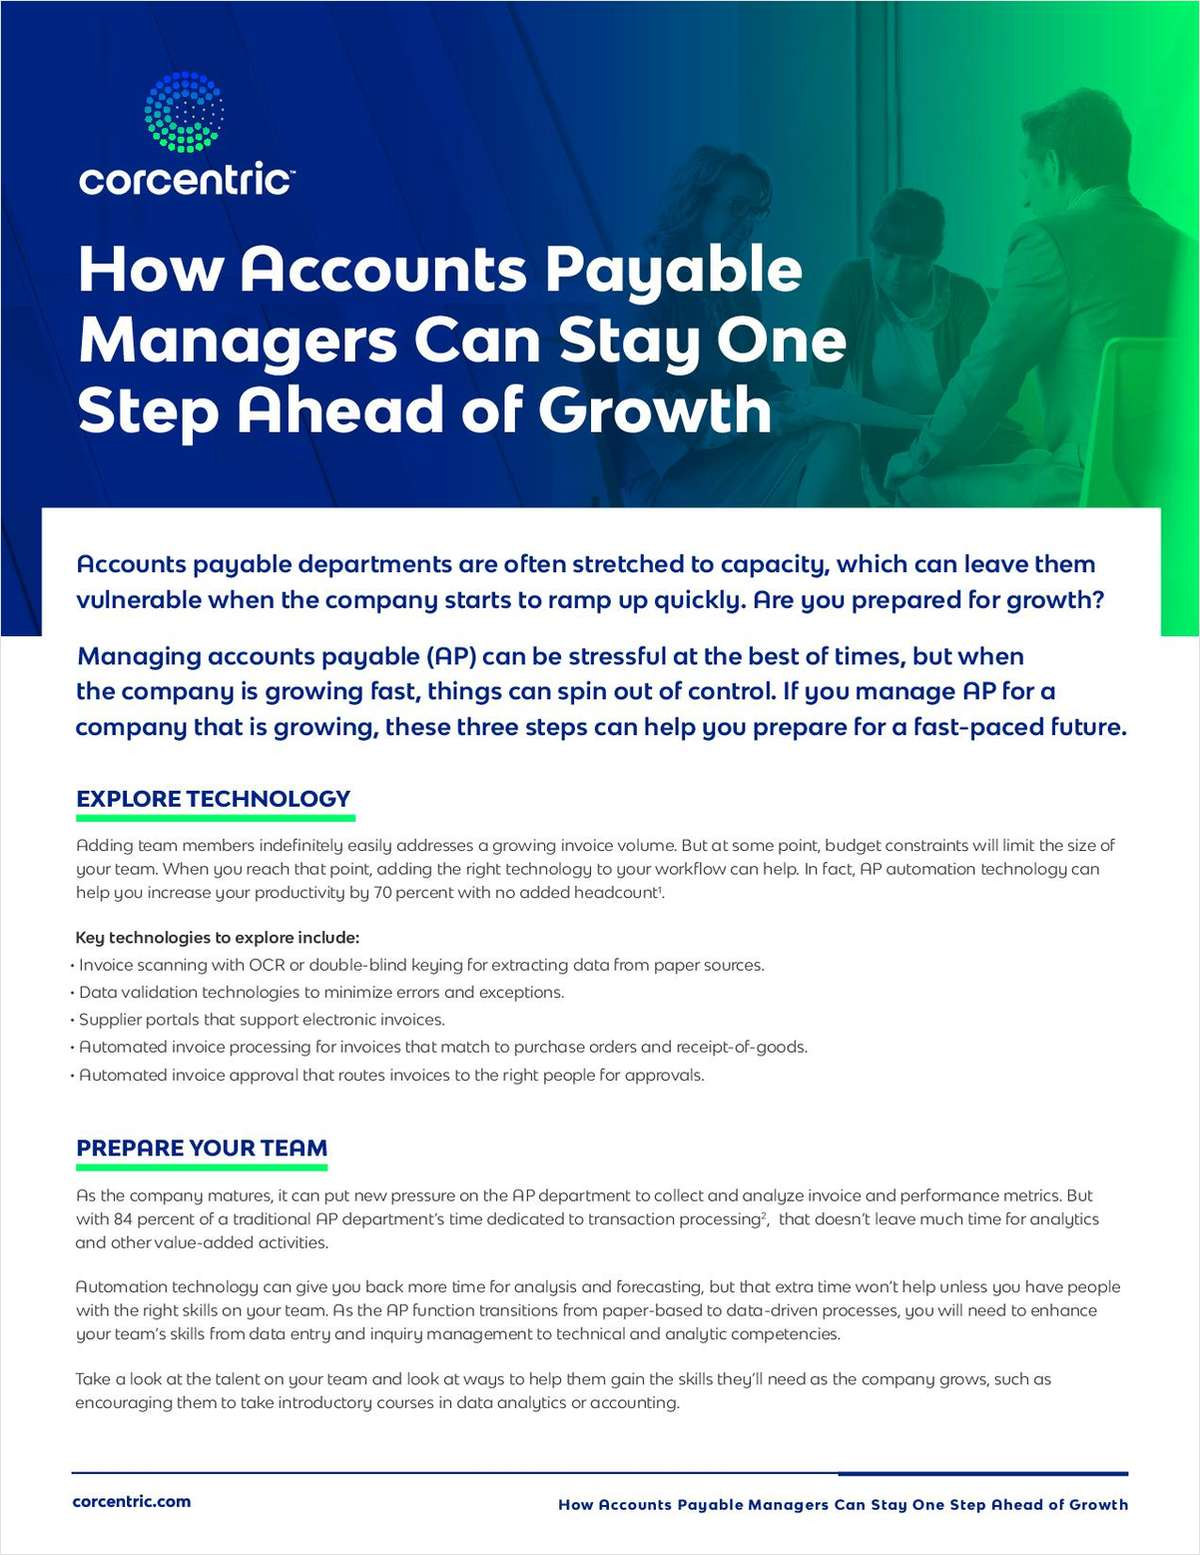 How Accounts Payable Managers Can Stay One Step Ahead of Growth